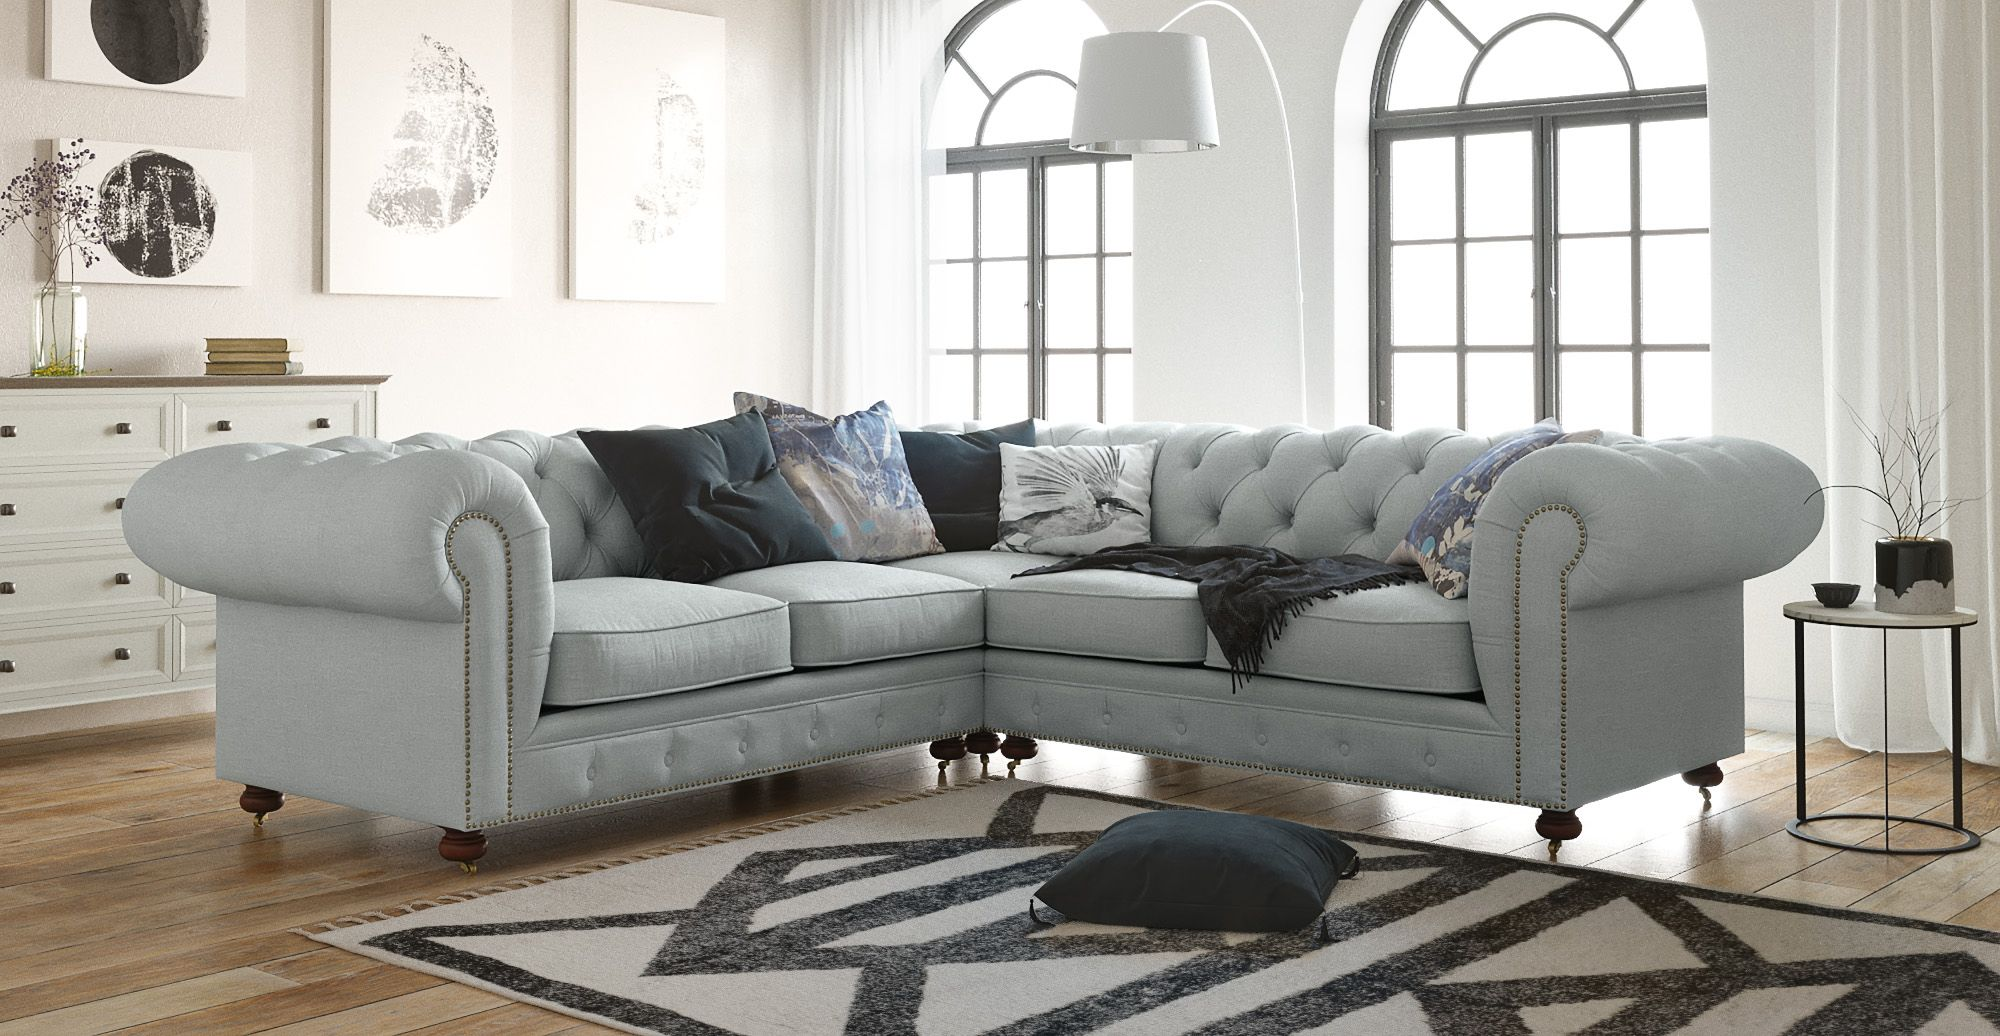 Camden chesterfield l shaped sectional corner sofa could be the centrepiece of any living room its designed to set the tone new furniture designs every